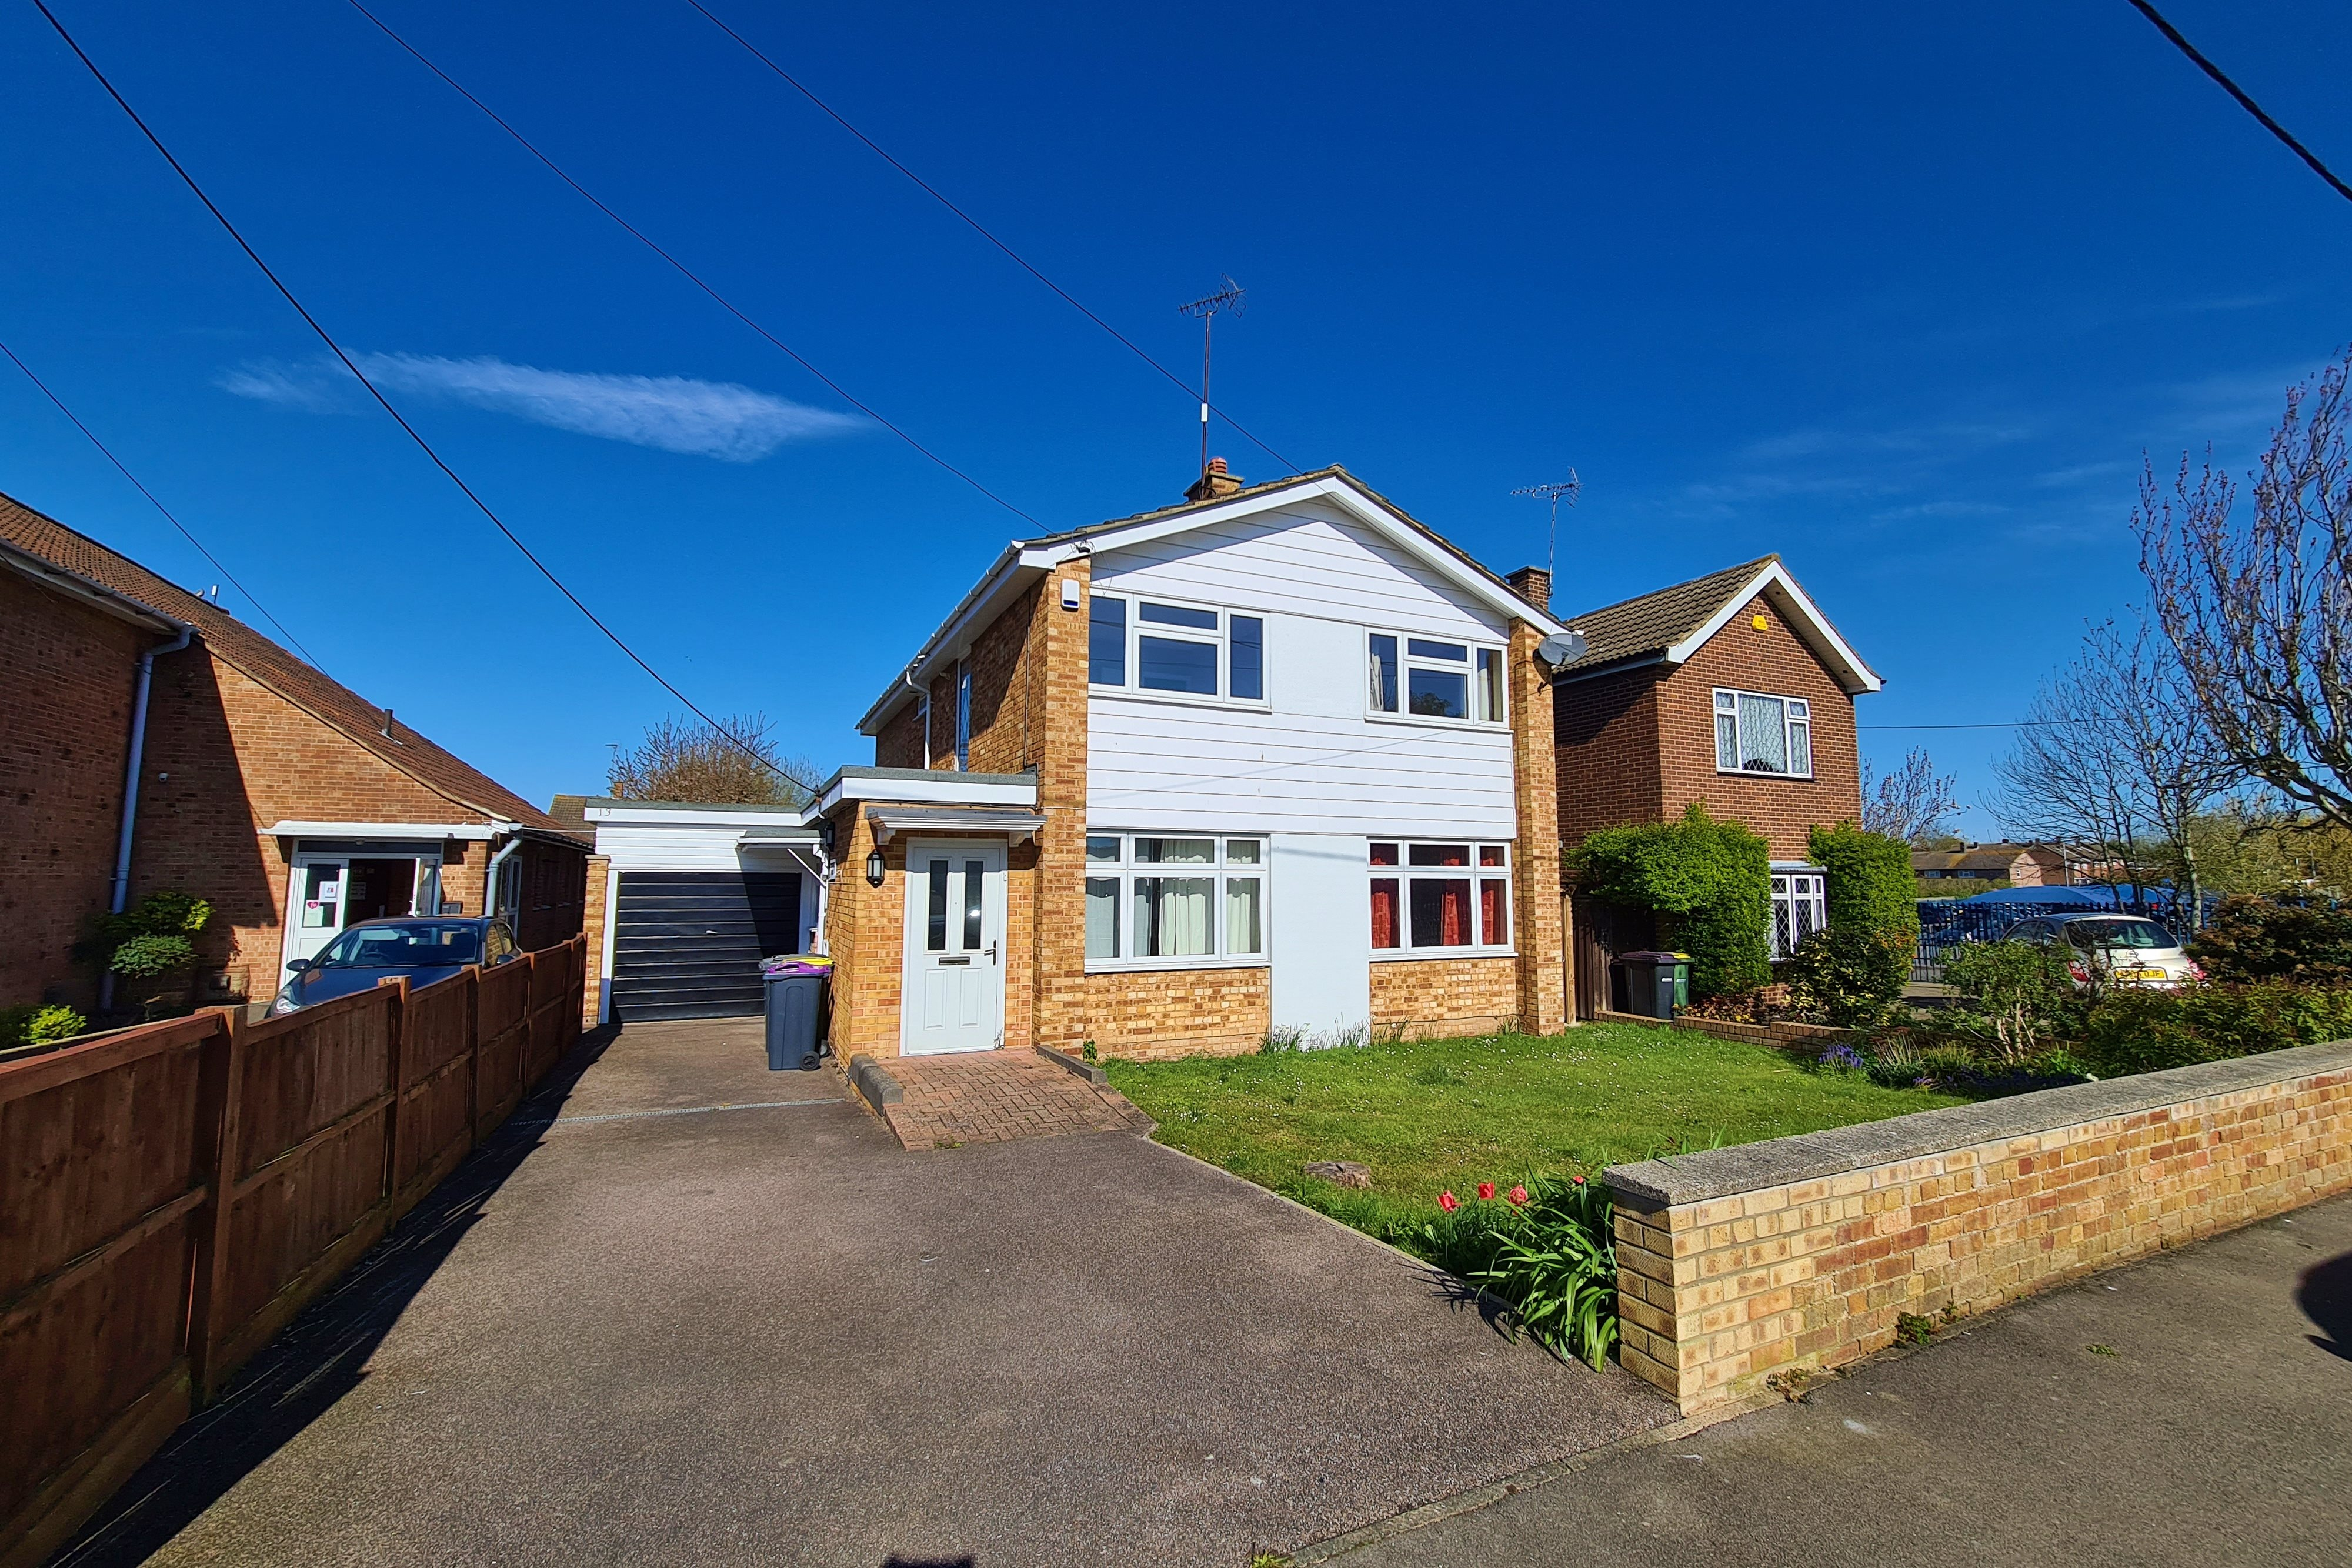 4 bed detached house to rent in Sir Walter Raleigh Drive, Rayleigh - Property Image 1